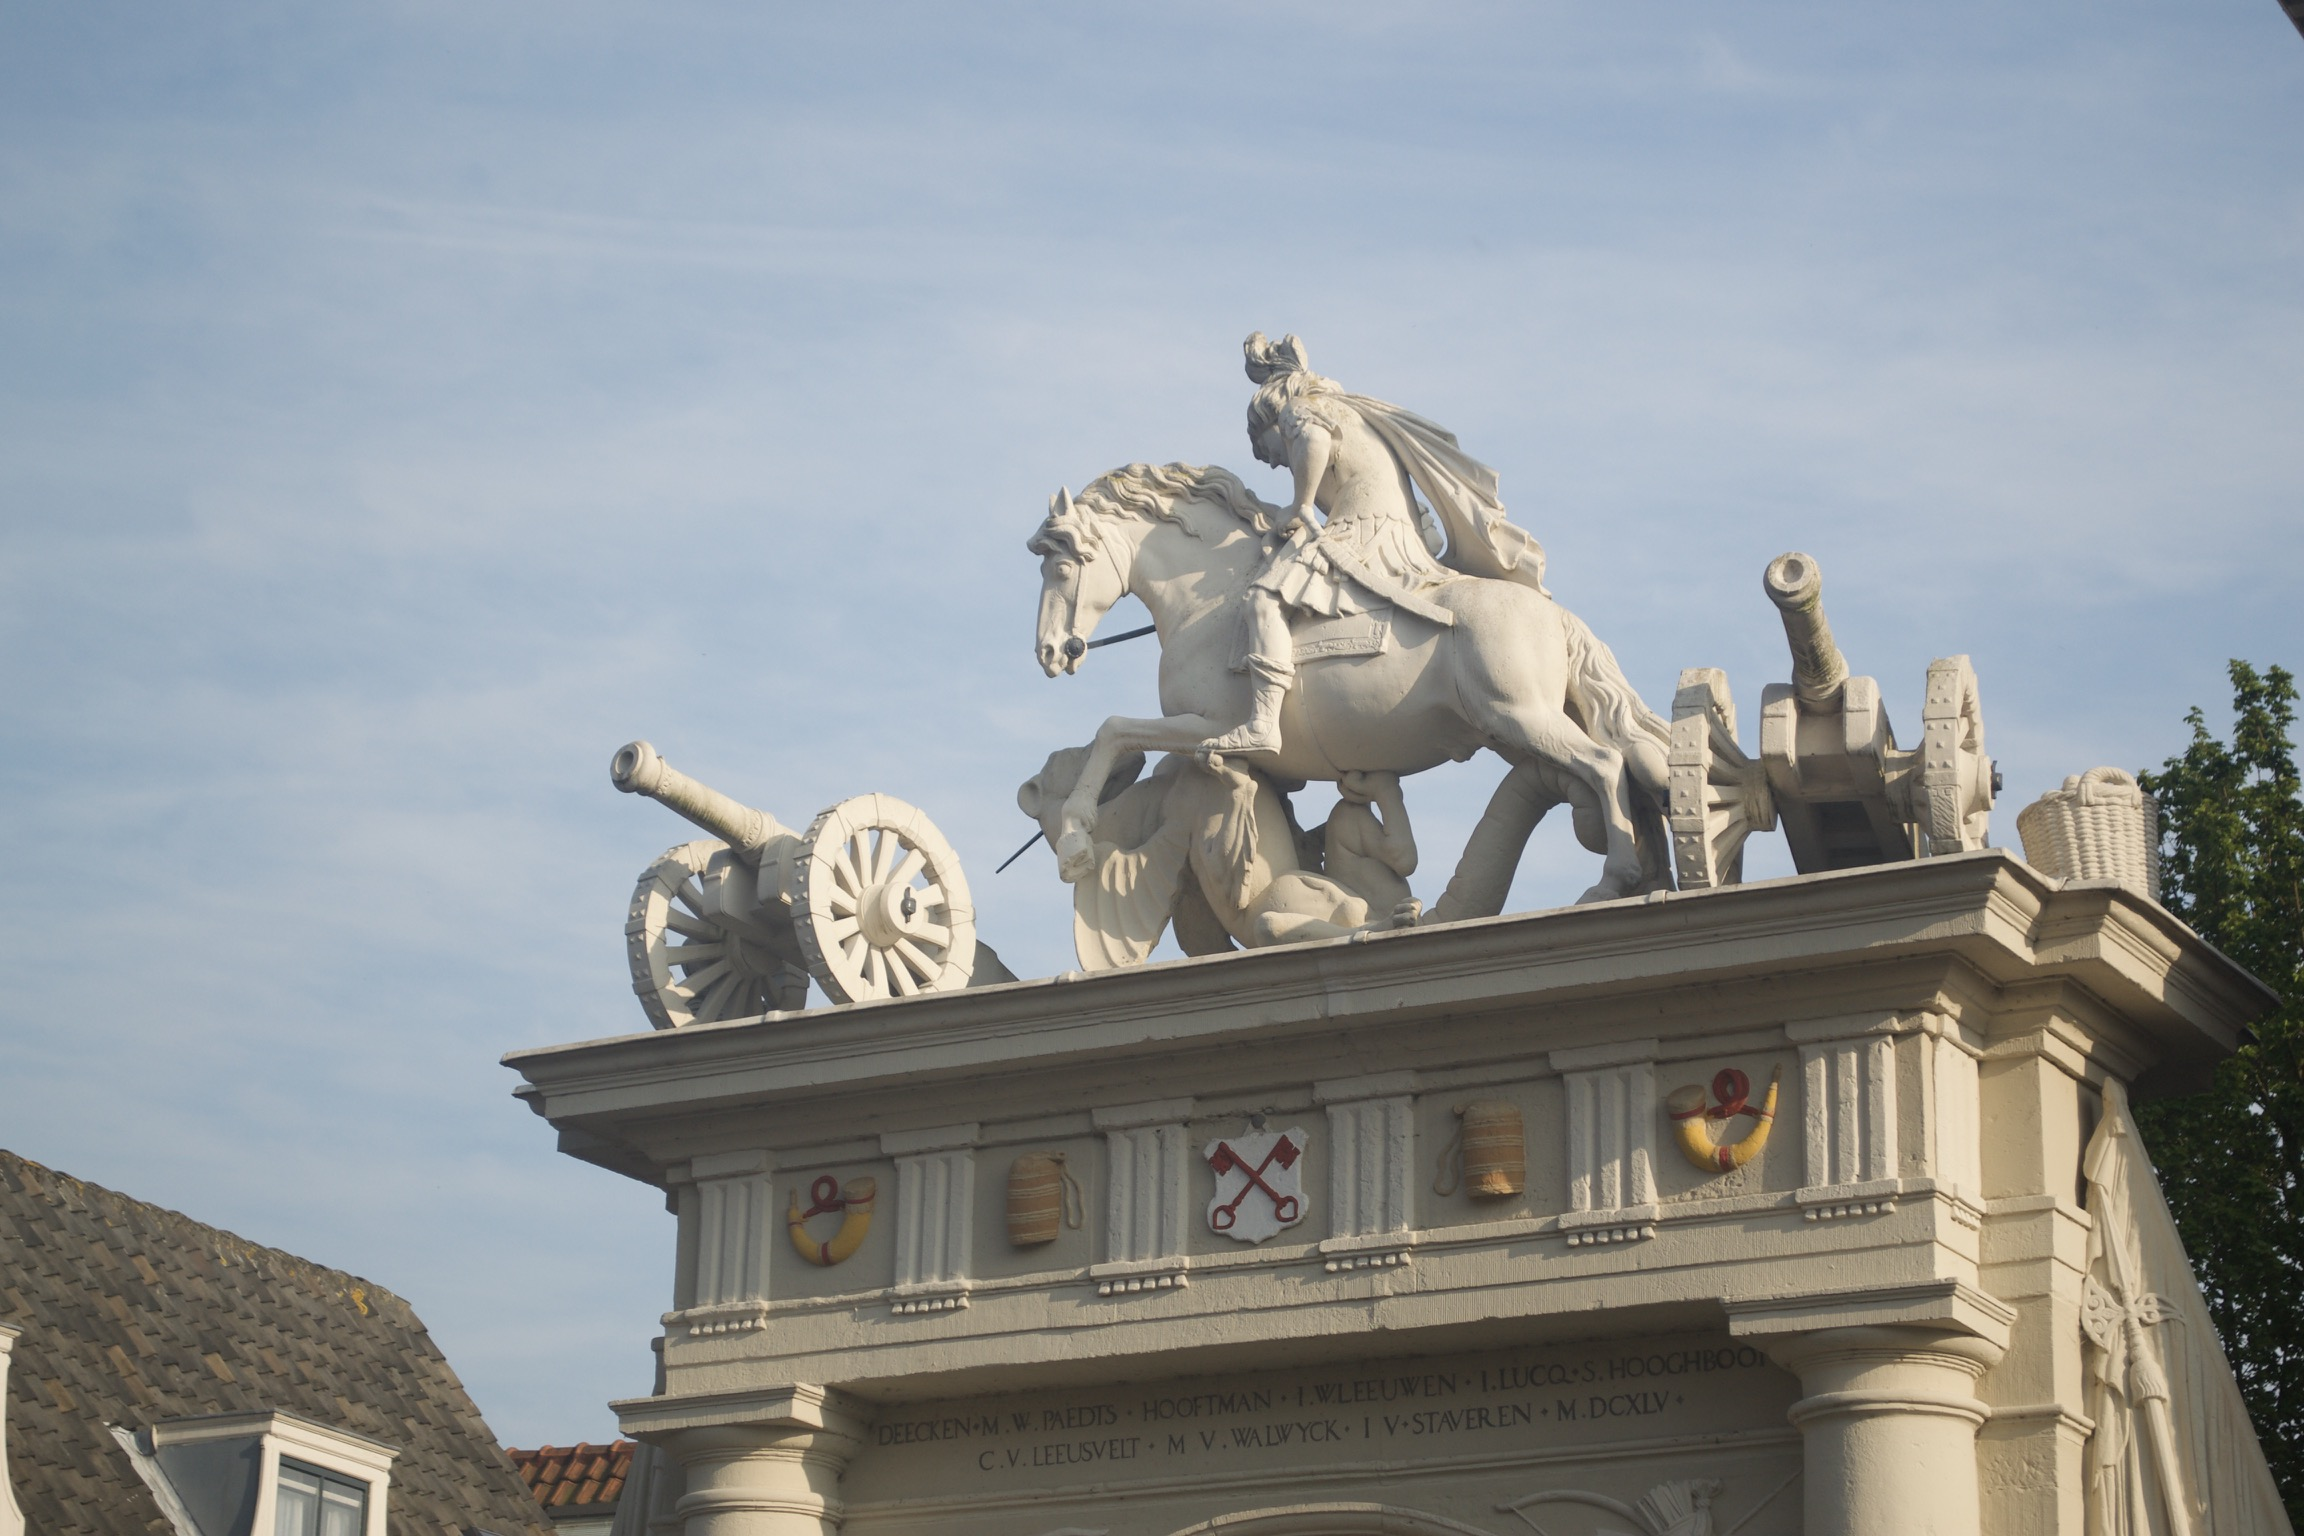 Statues of two cannons and a horse and rider fighting a griffin on top of an archway.